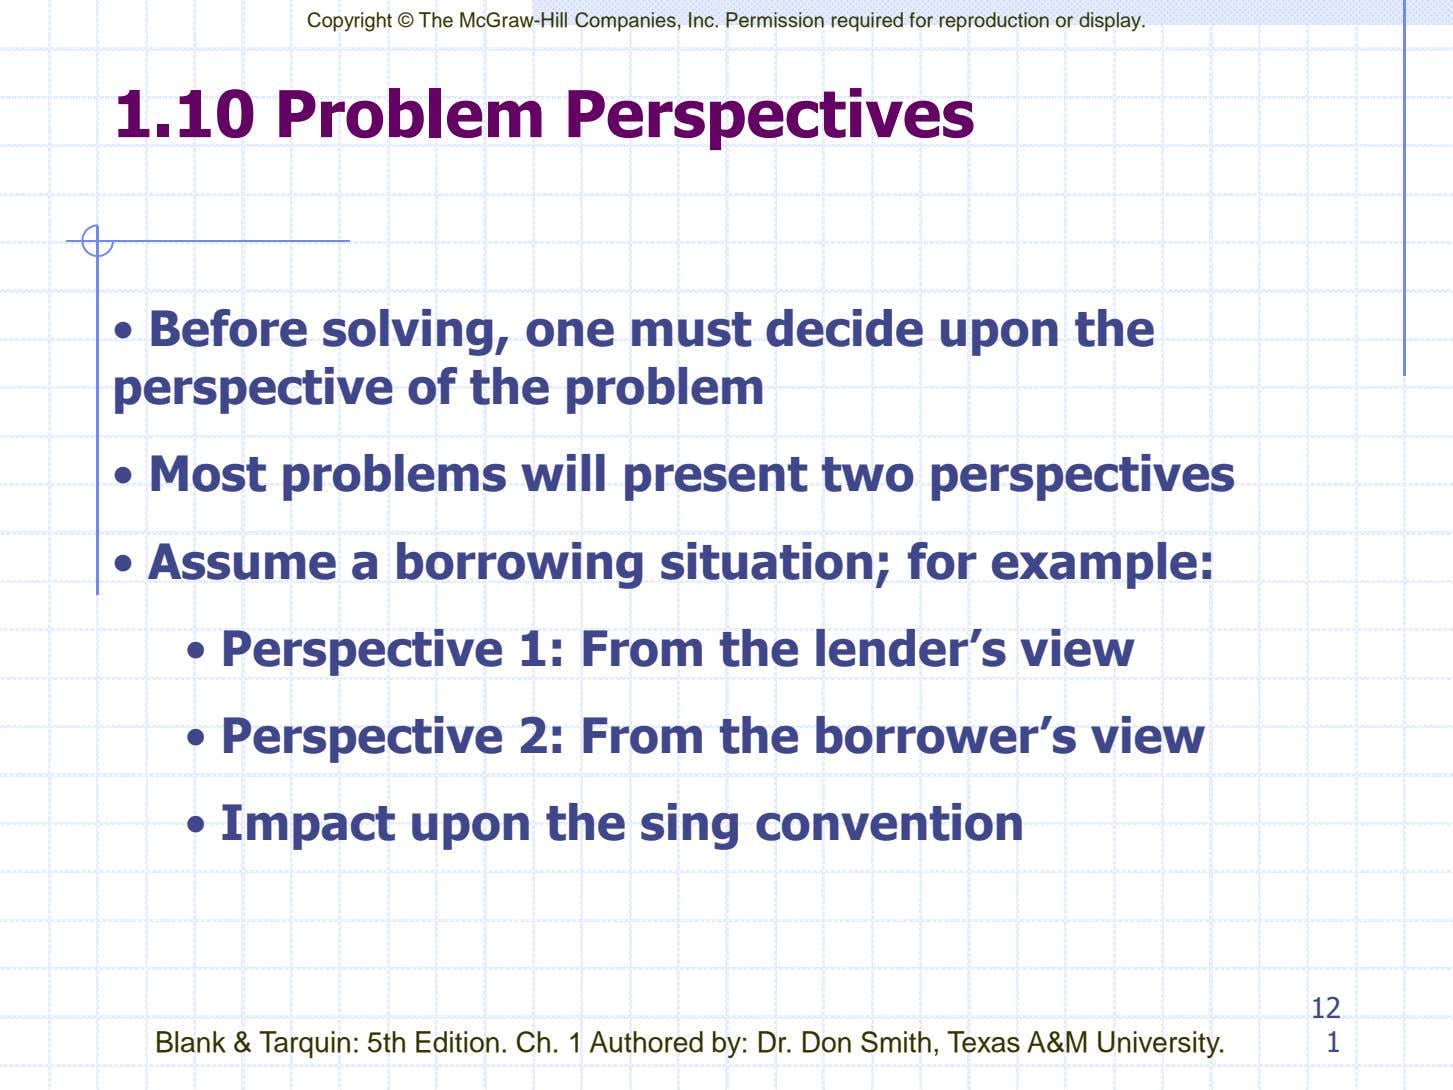 Copyright © The McGraw-Hill Companies, Inc. Permission required for reproduction or display. 1.10 Problem Perspectives